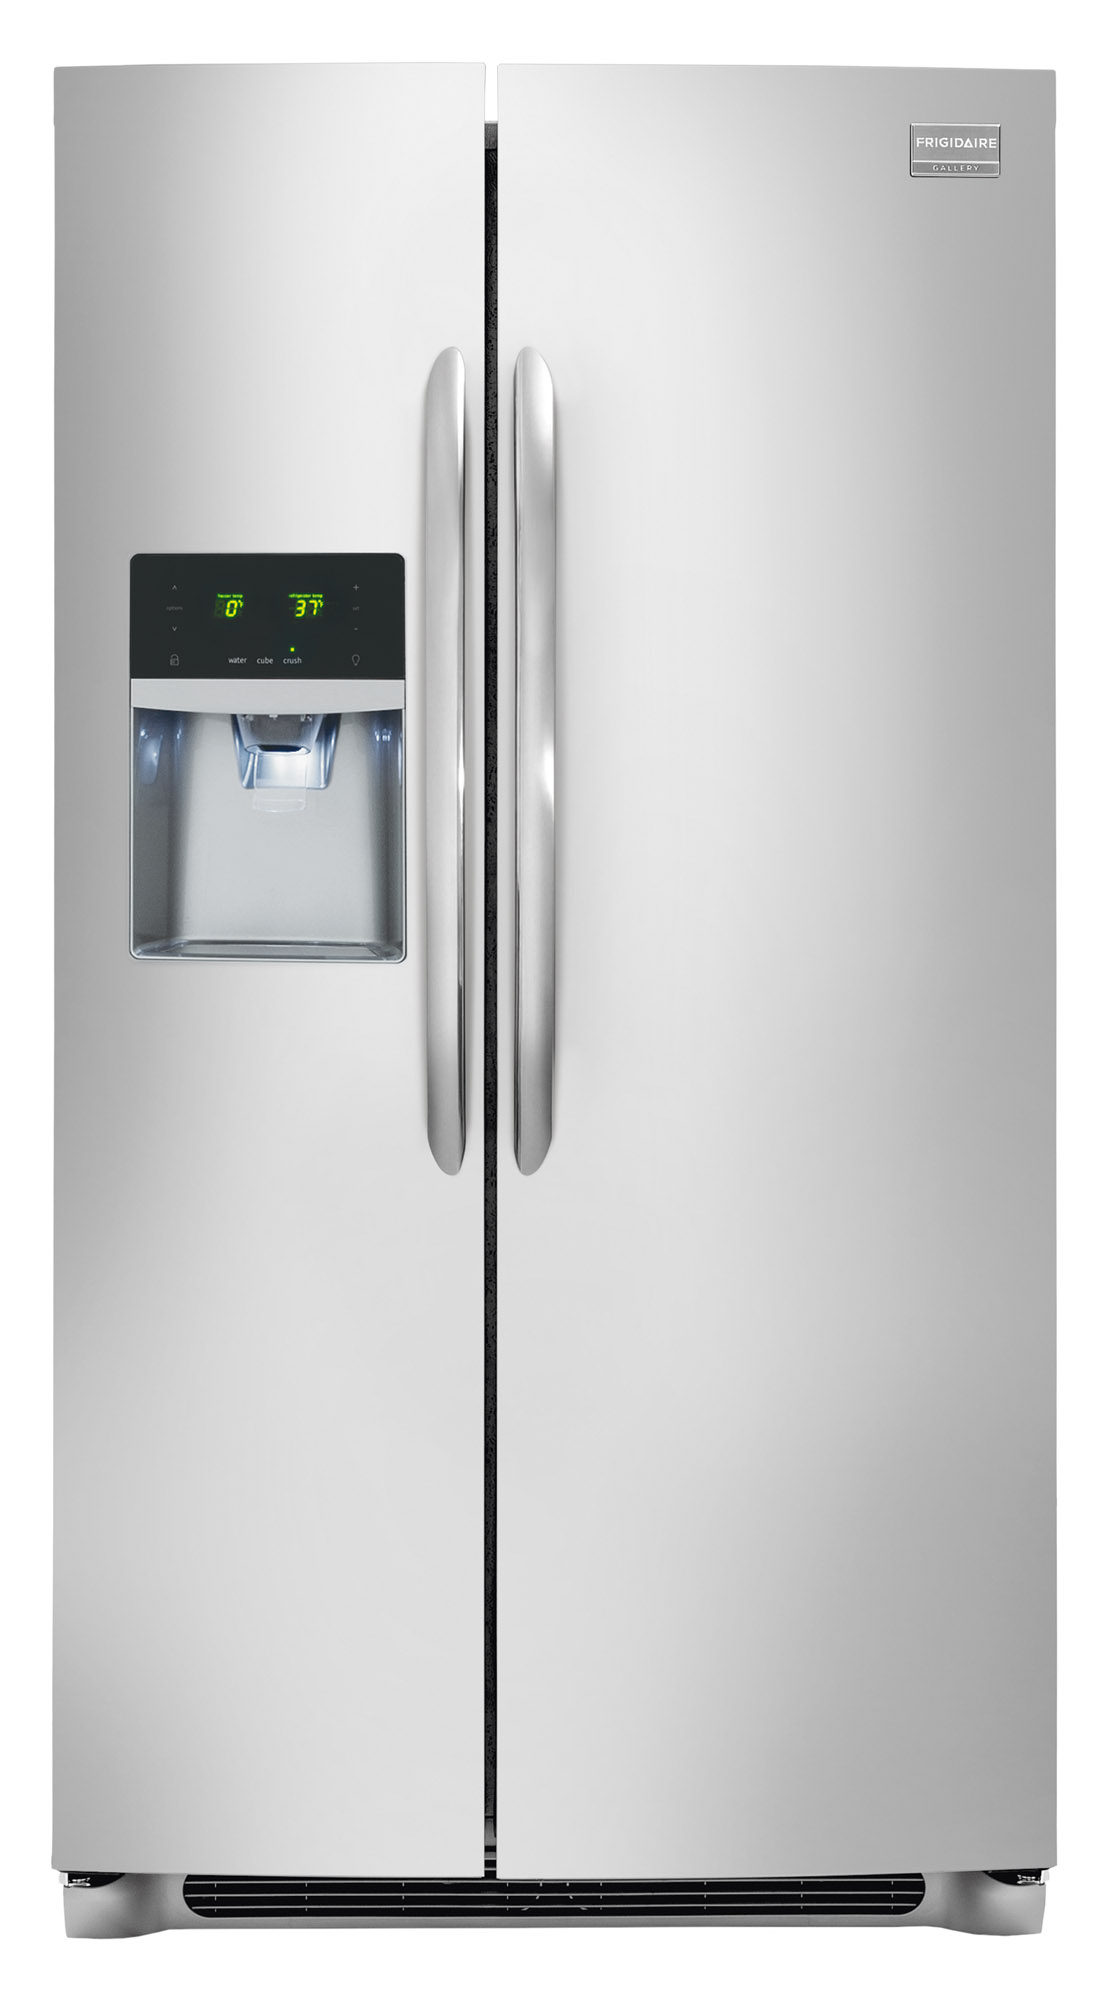 Frigidaire Gallery FGHS2655PF 25.6 Cu. Ft. Side-by-Side Refrigerator - Stainless Steel